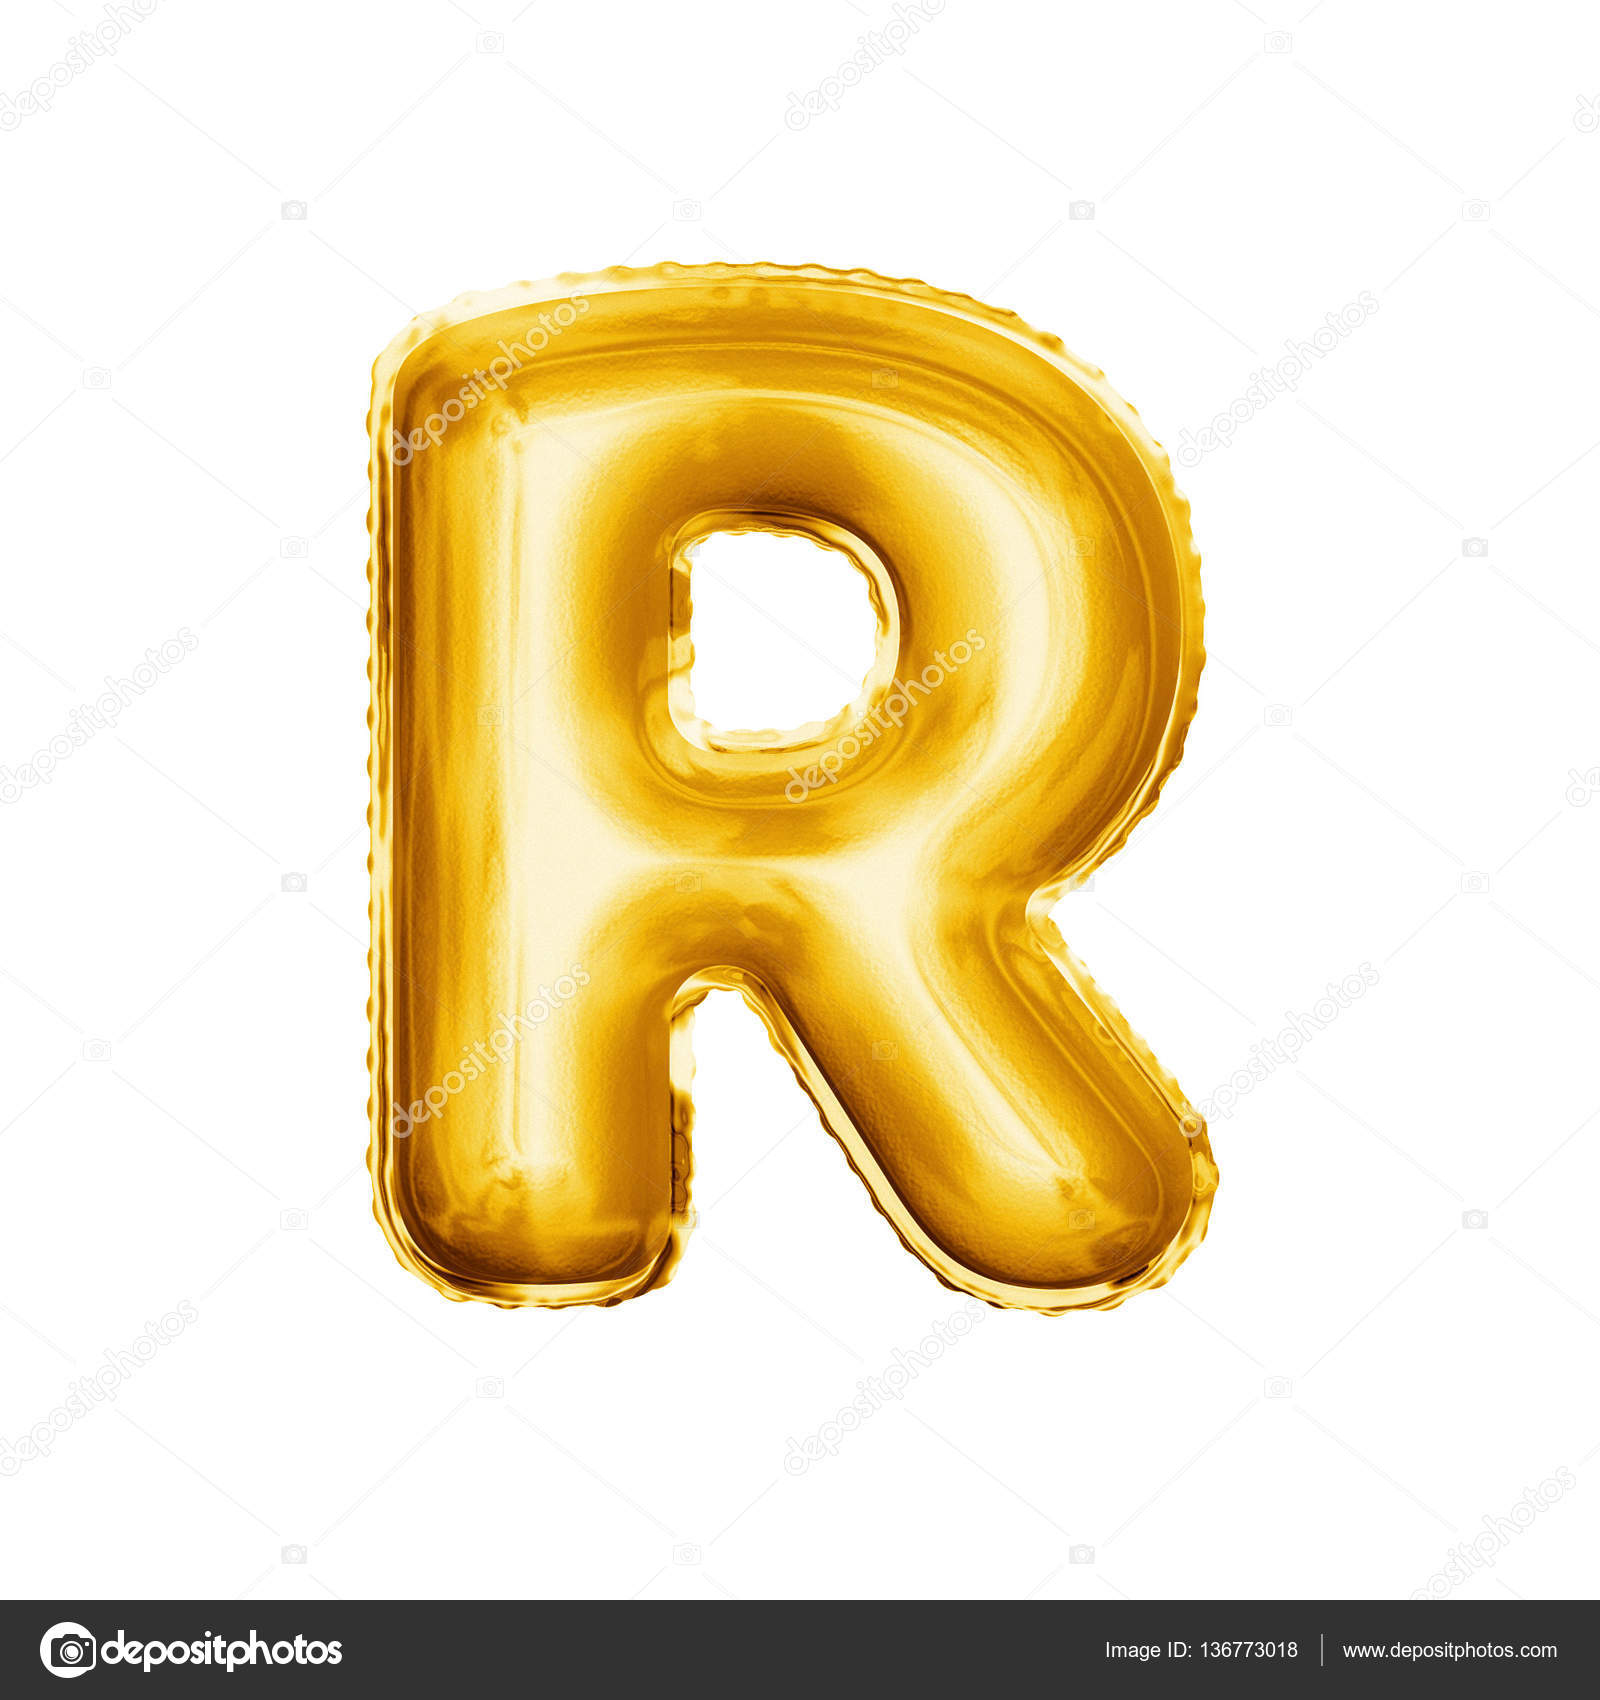 Balloon letter r 3d golden foil realistic alphabet stock photo balloon letter r 3d golden foil realistic alphabet stock photo altavistaventures Image collections